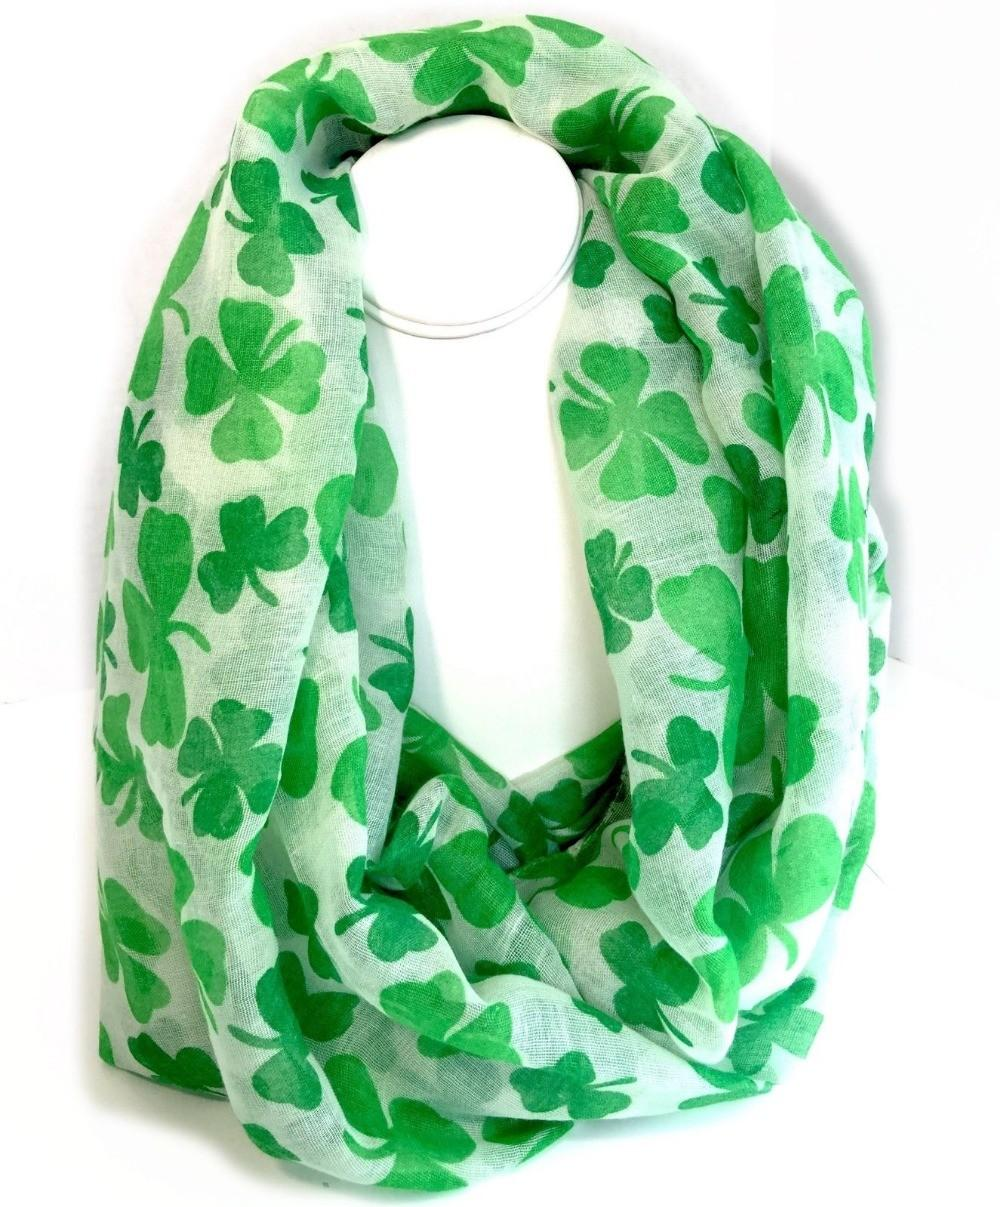 Lucky Four Leaf Clover Infinity Scarf Light Weight